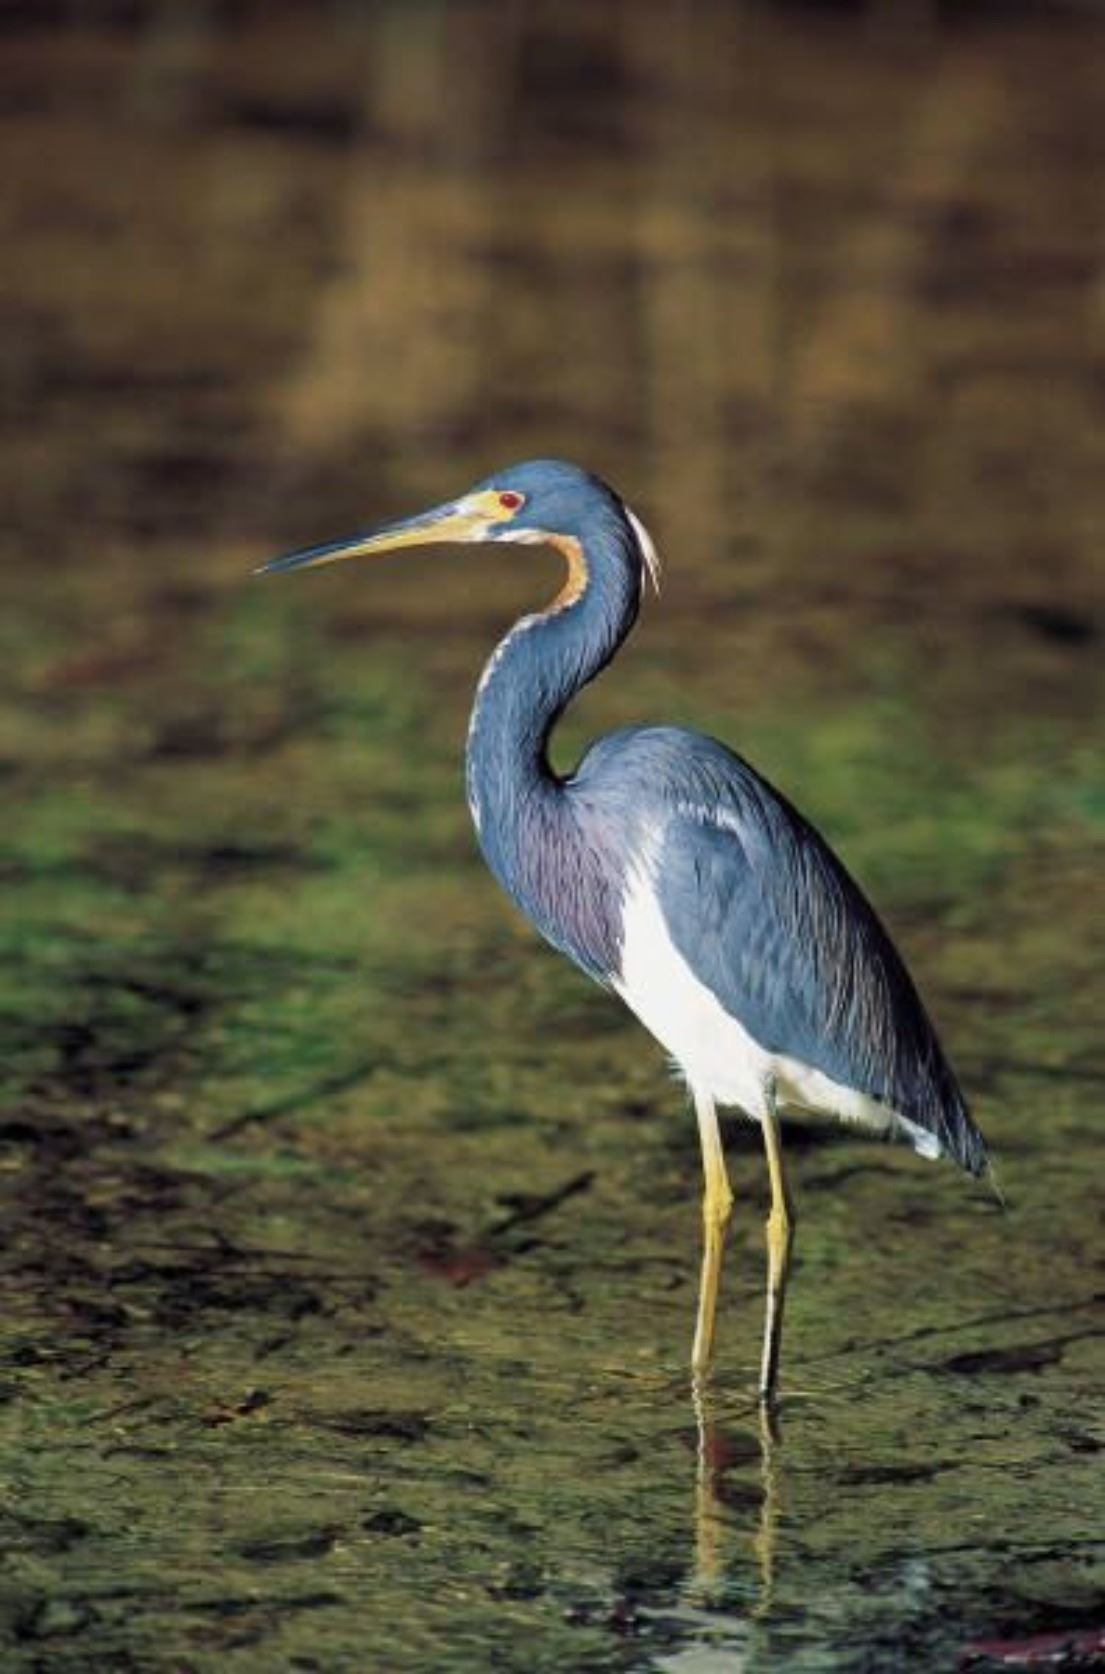 Blue Heron Wading in Shallow Waters